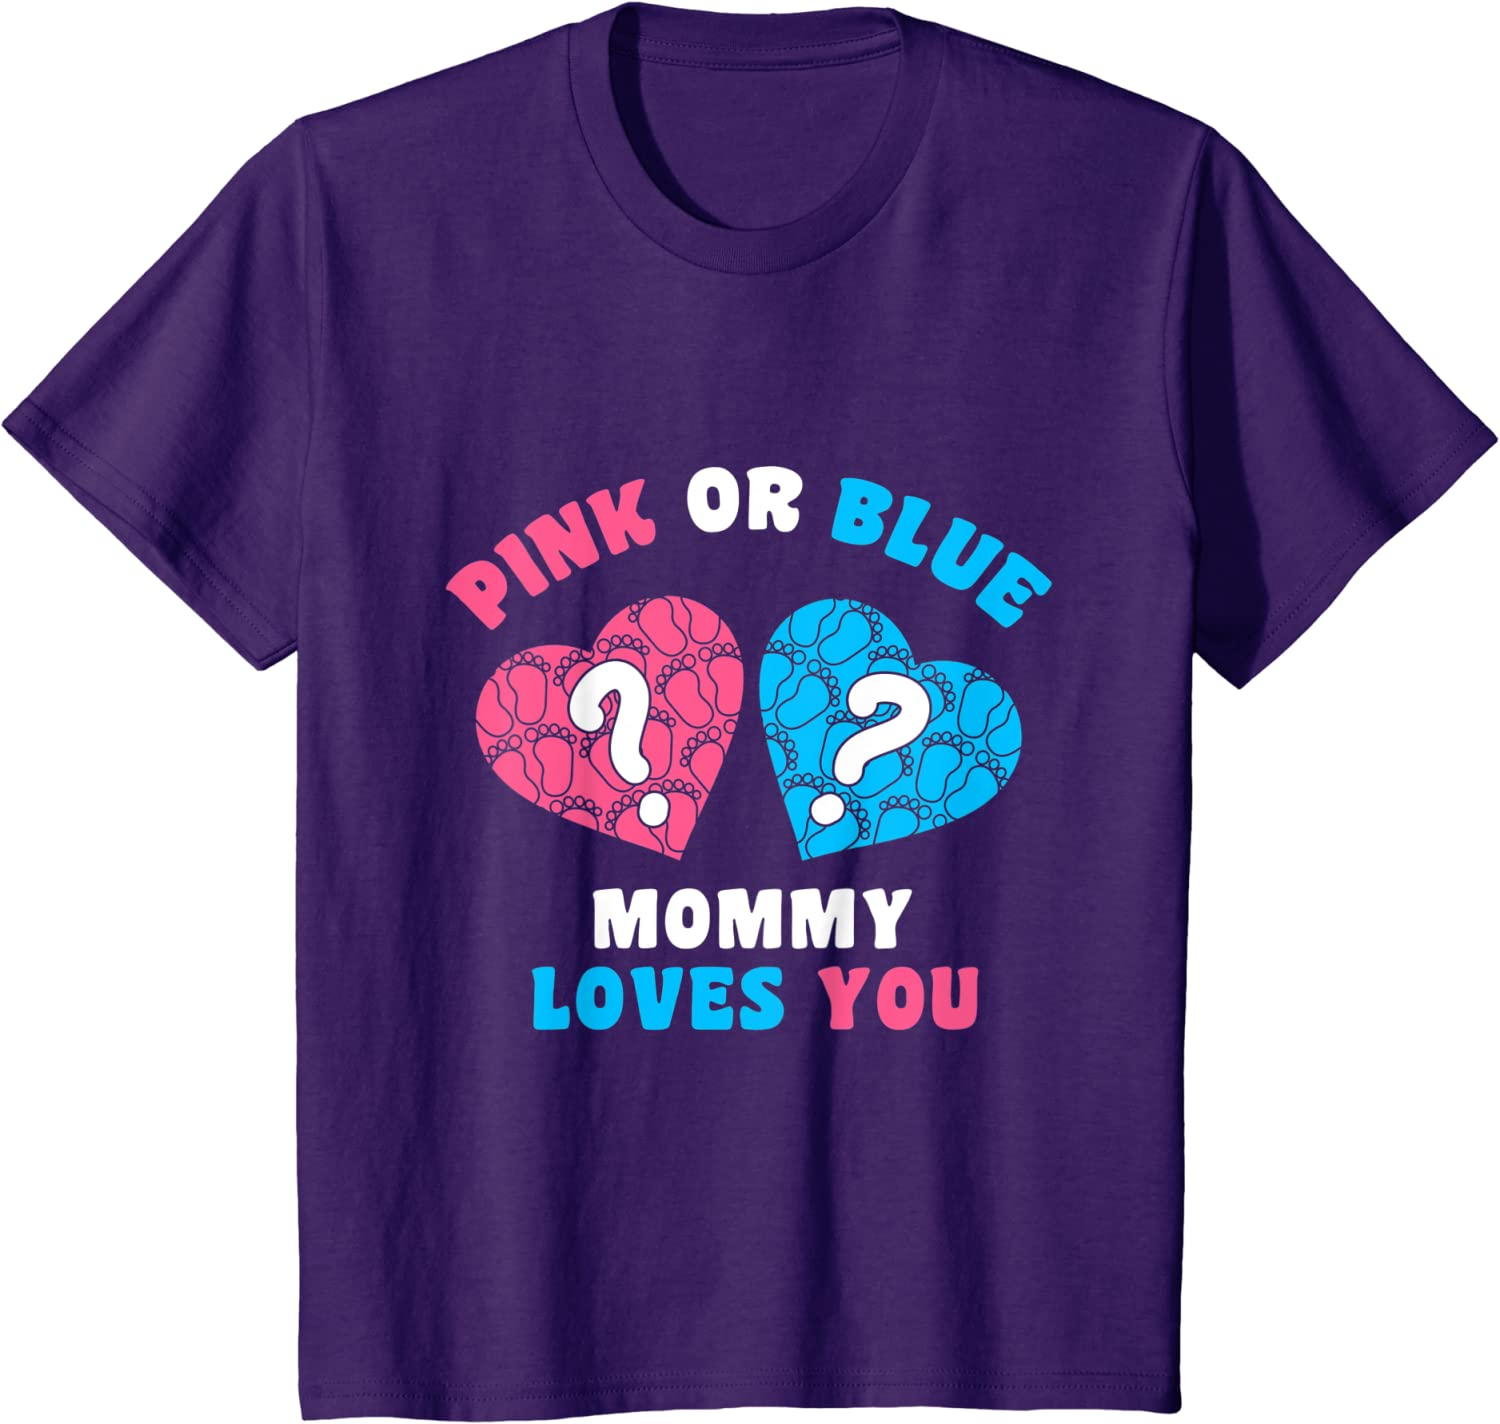 mothers day shirt mommy shirt Keeper Of The Gender Pink or Blue Mommy Loves You Women design Unisex T-Shirt mom shirt mama shirt